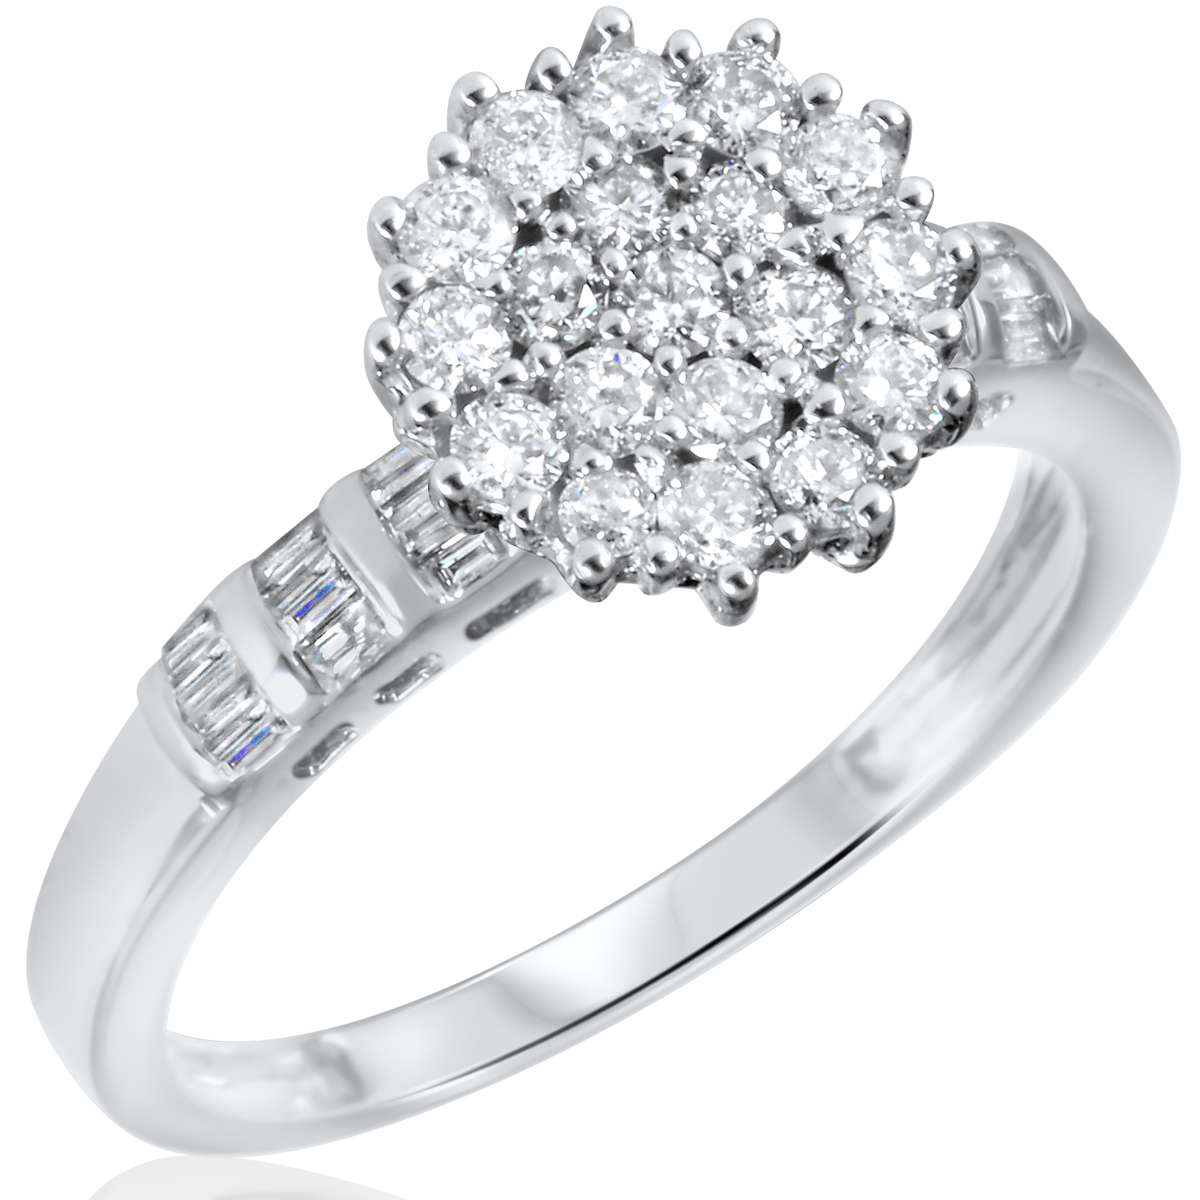 2/3 CT. T.W. Diamond Ladies Engagement Ring 14K White Gold- Size 8